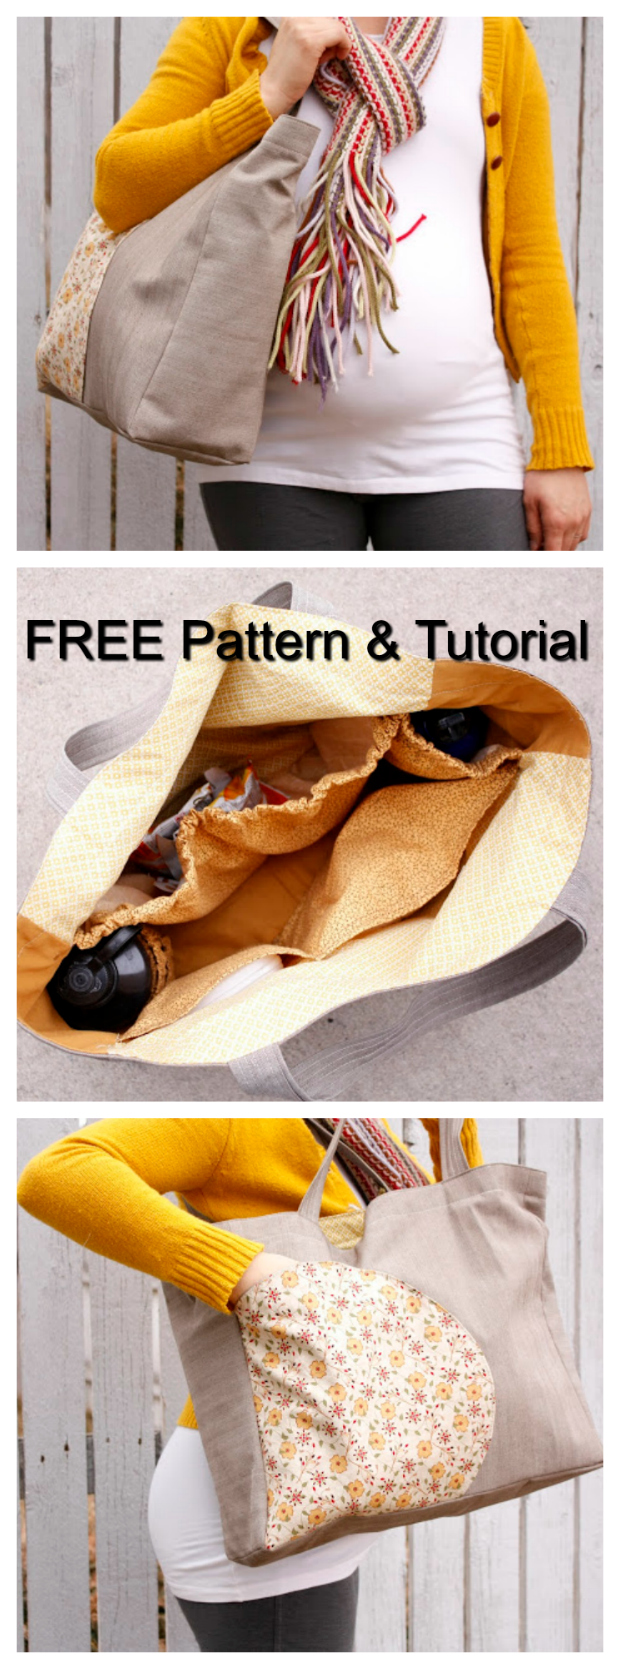 Let's Go To The Park Bag FREE sewing pattern & tutorial